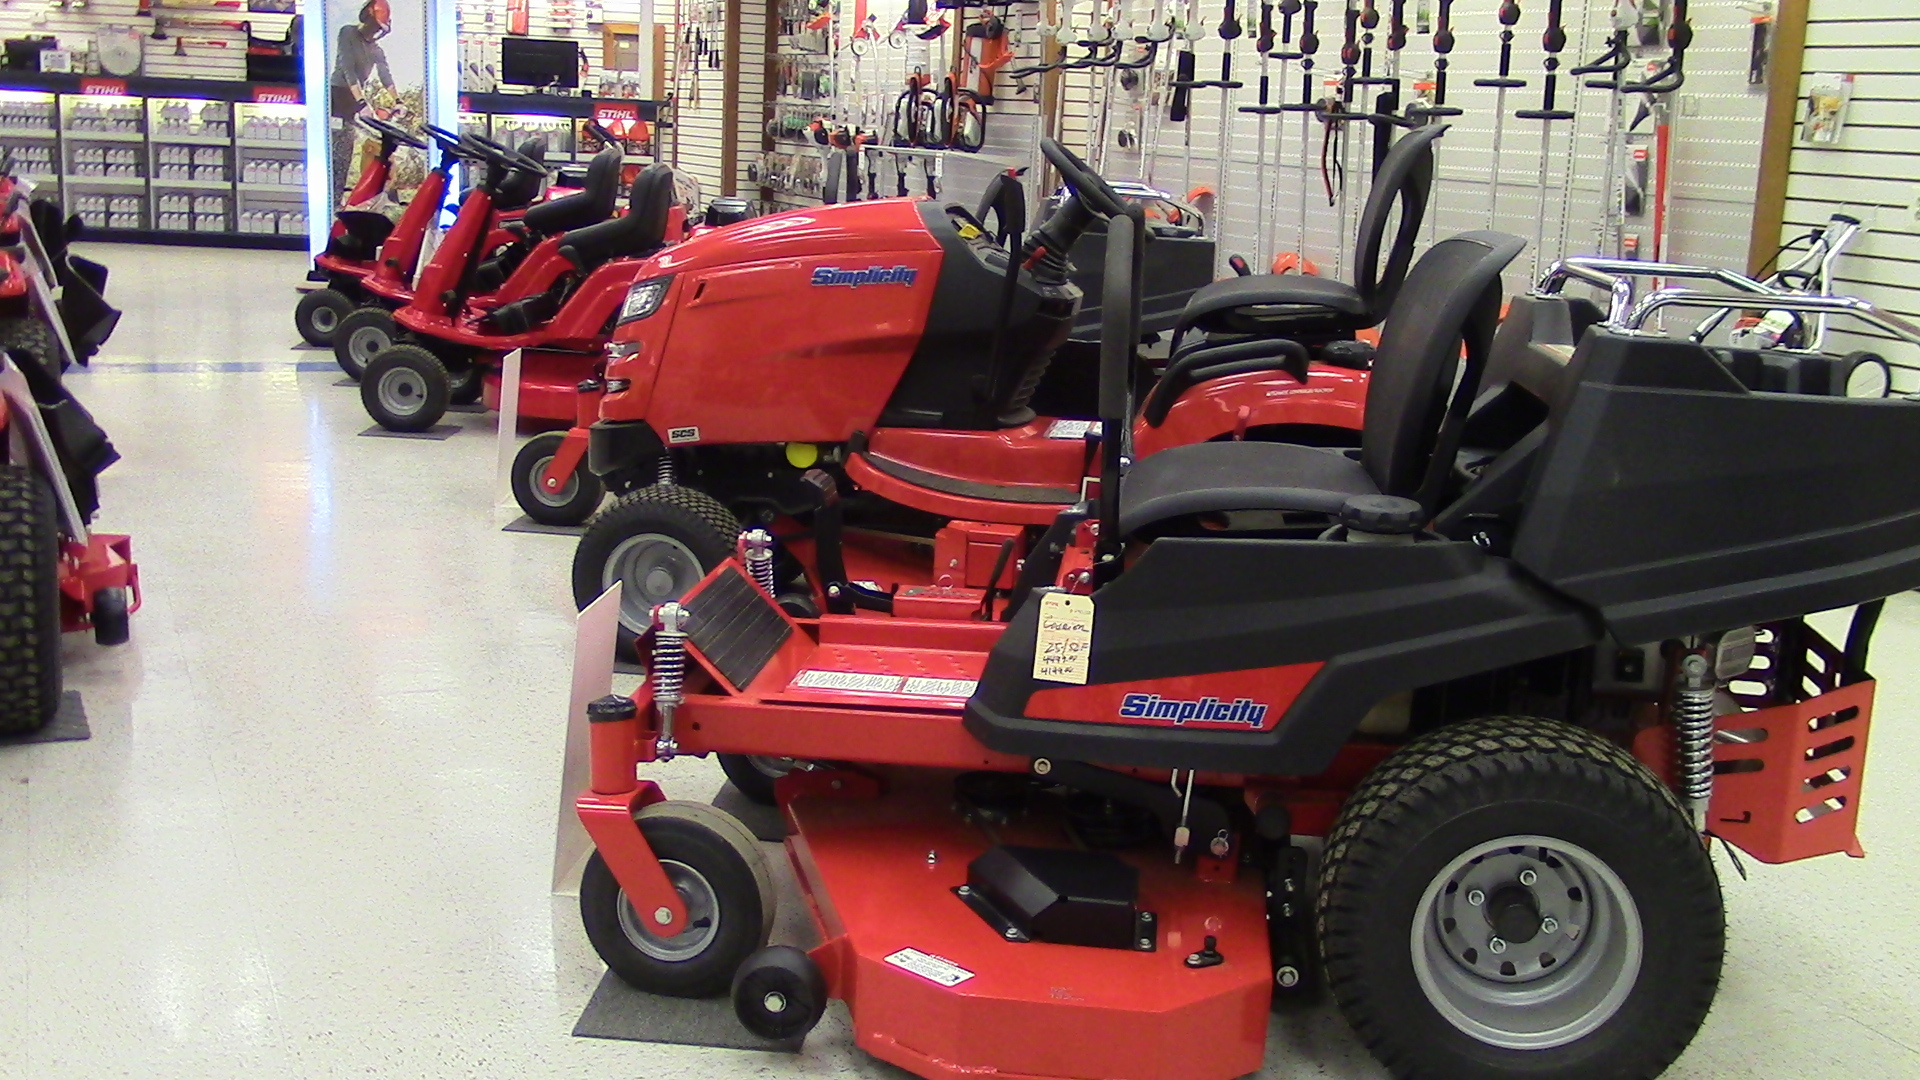 Snapper and Simplicity Mowers